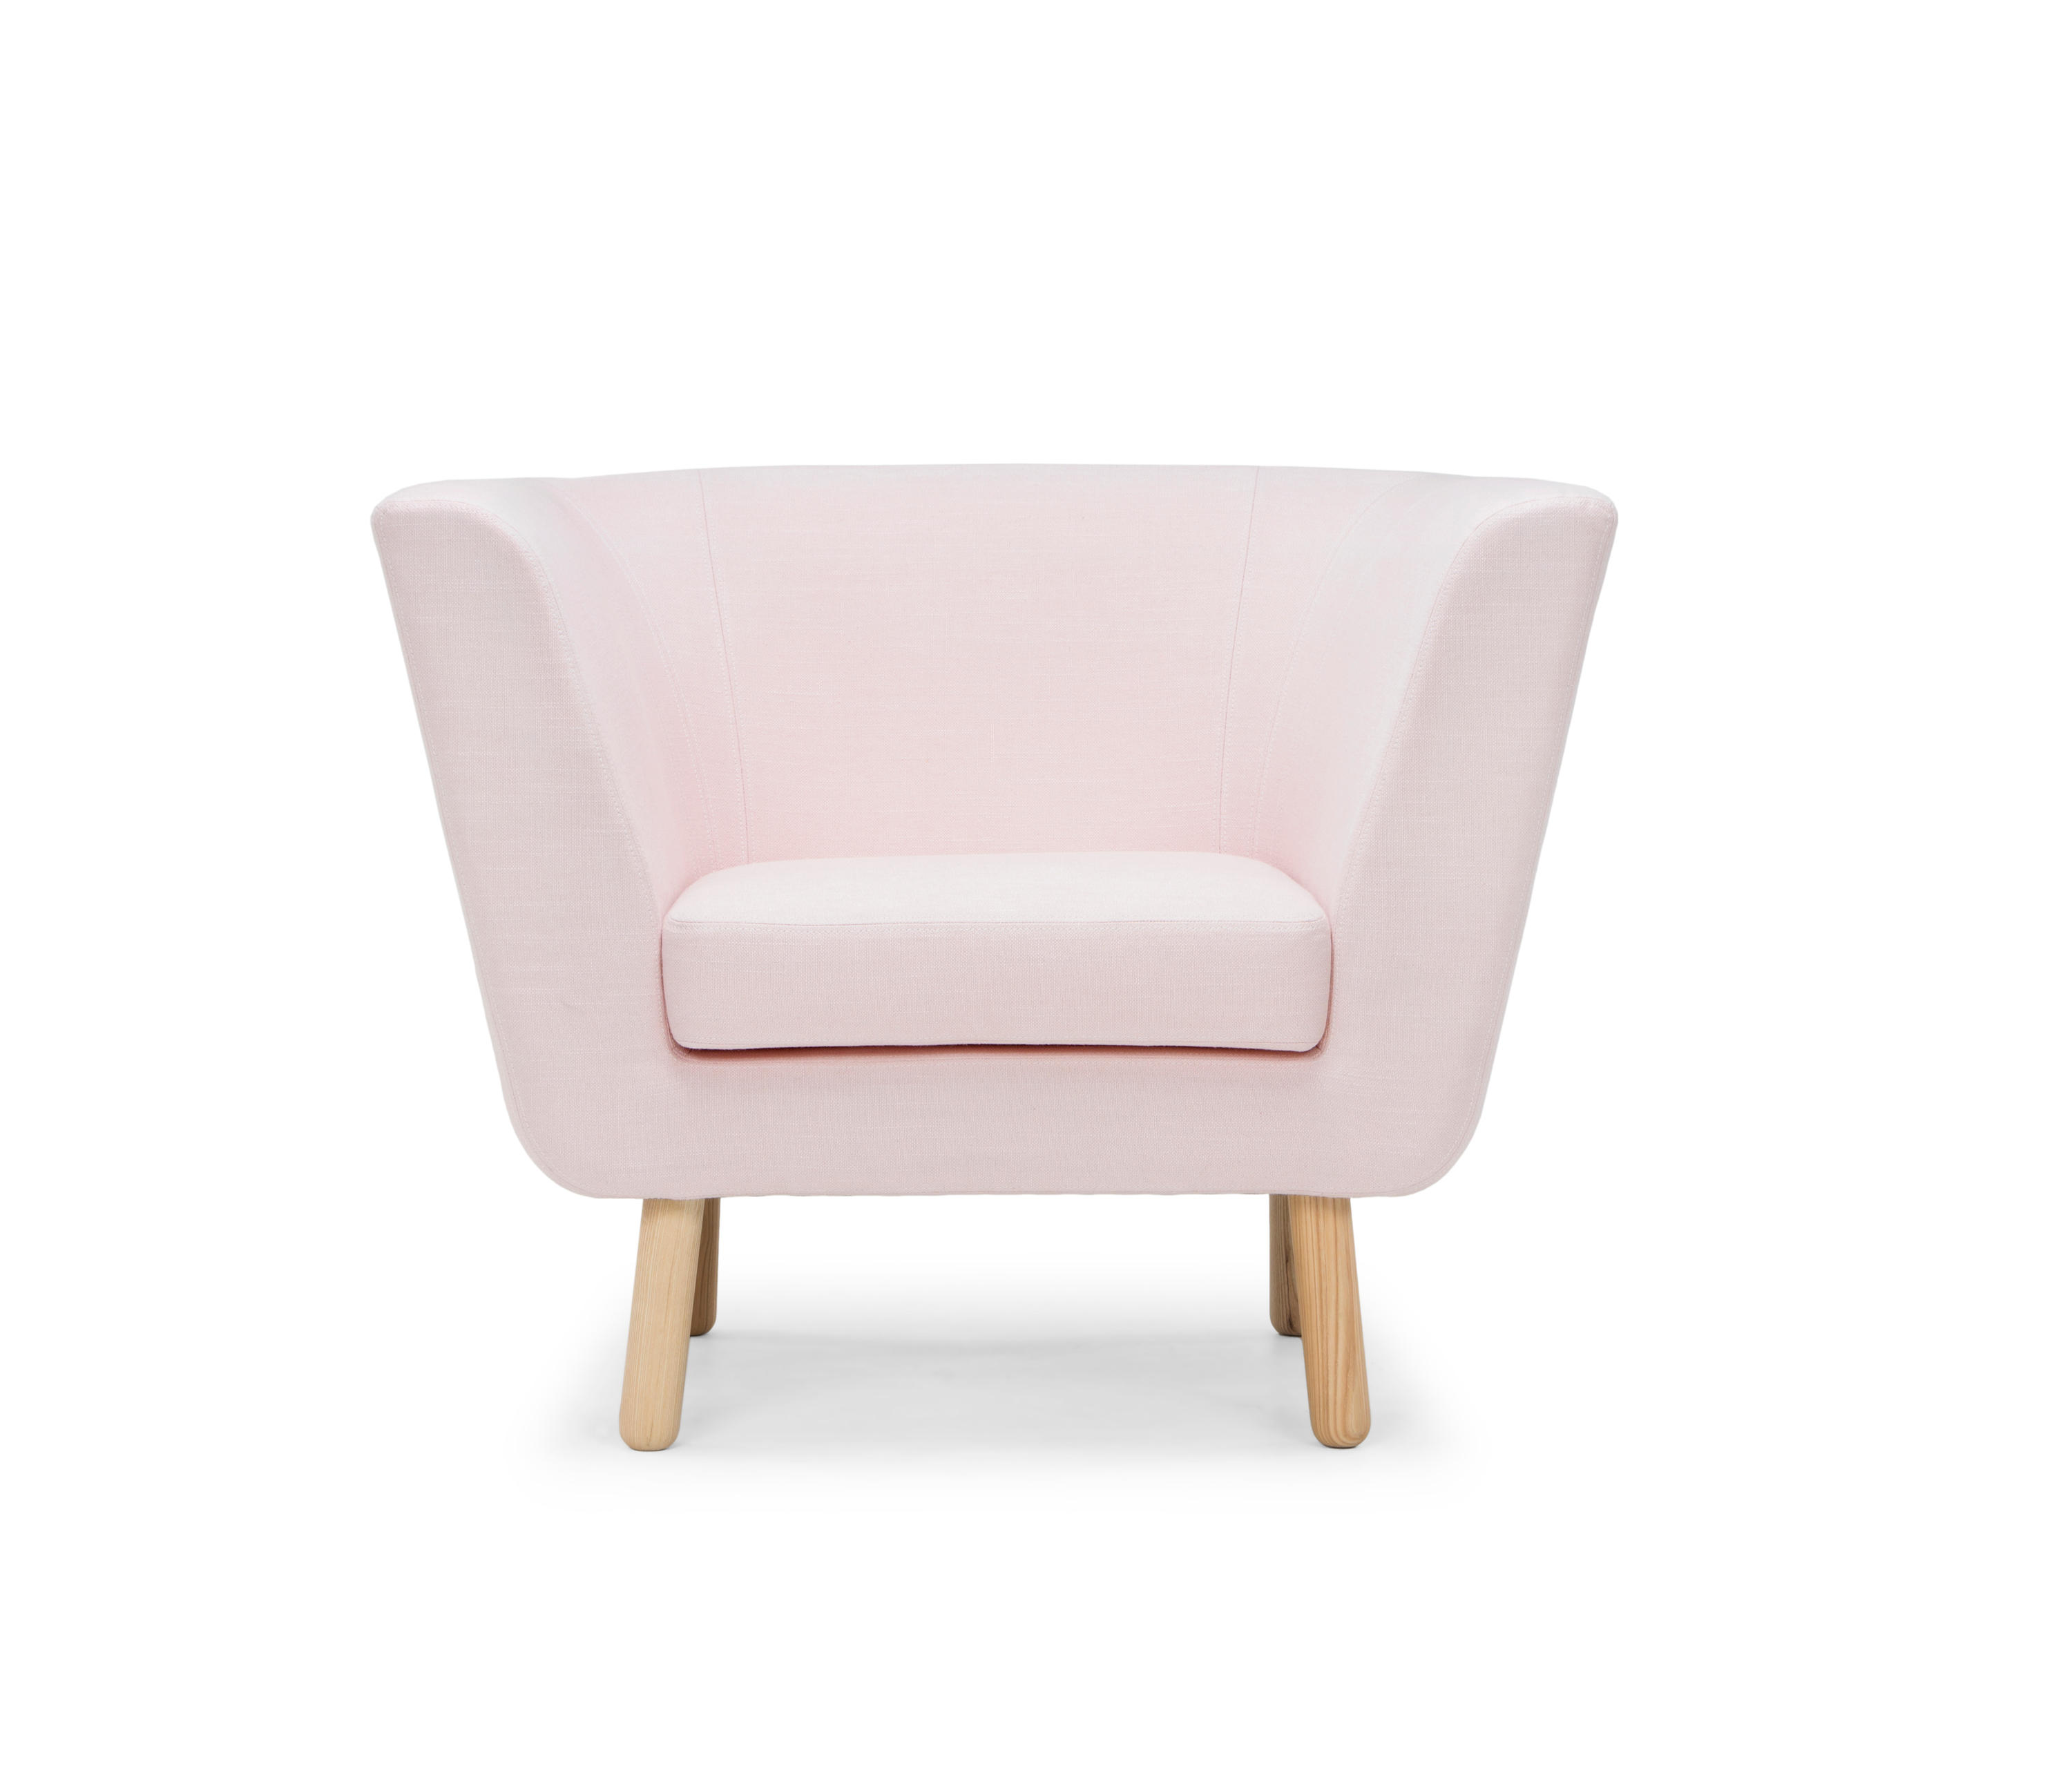 Nest Easy Chair Sessel Von Design House Stockholm Architonic